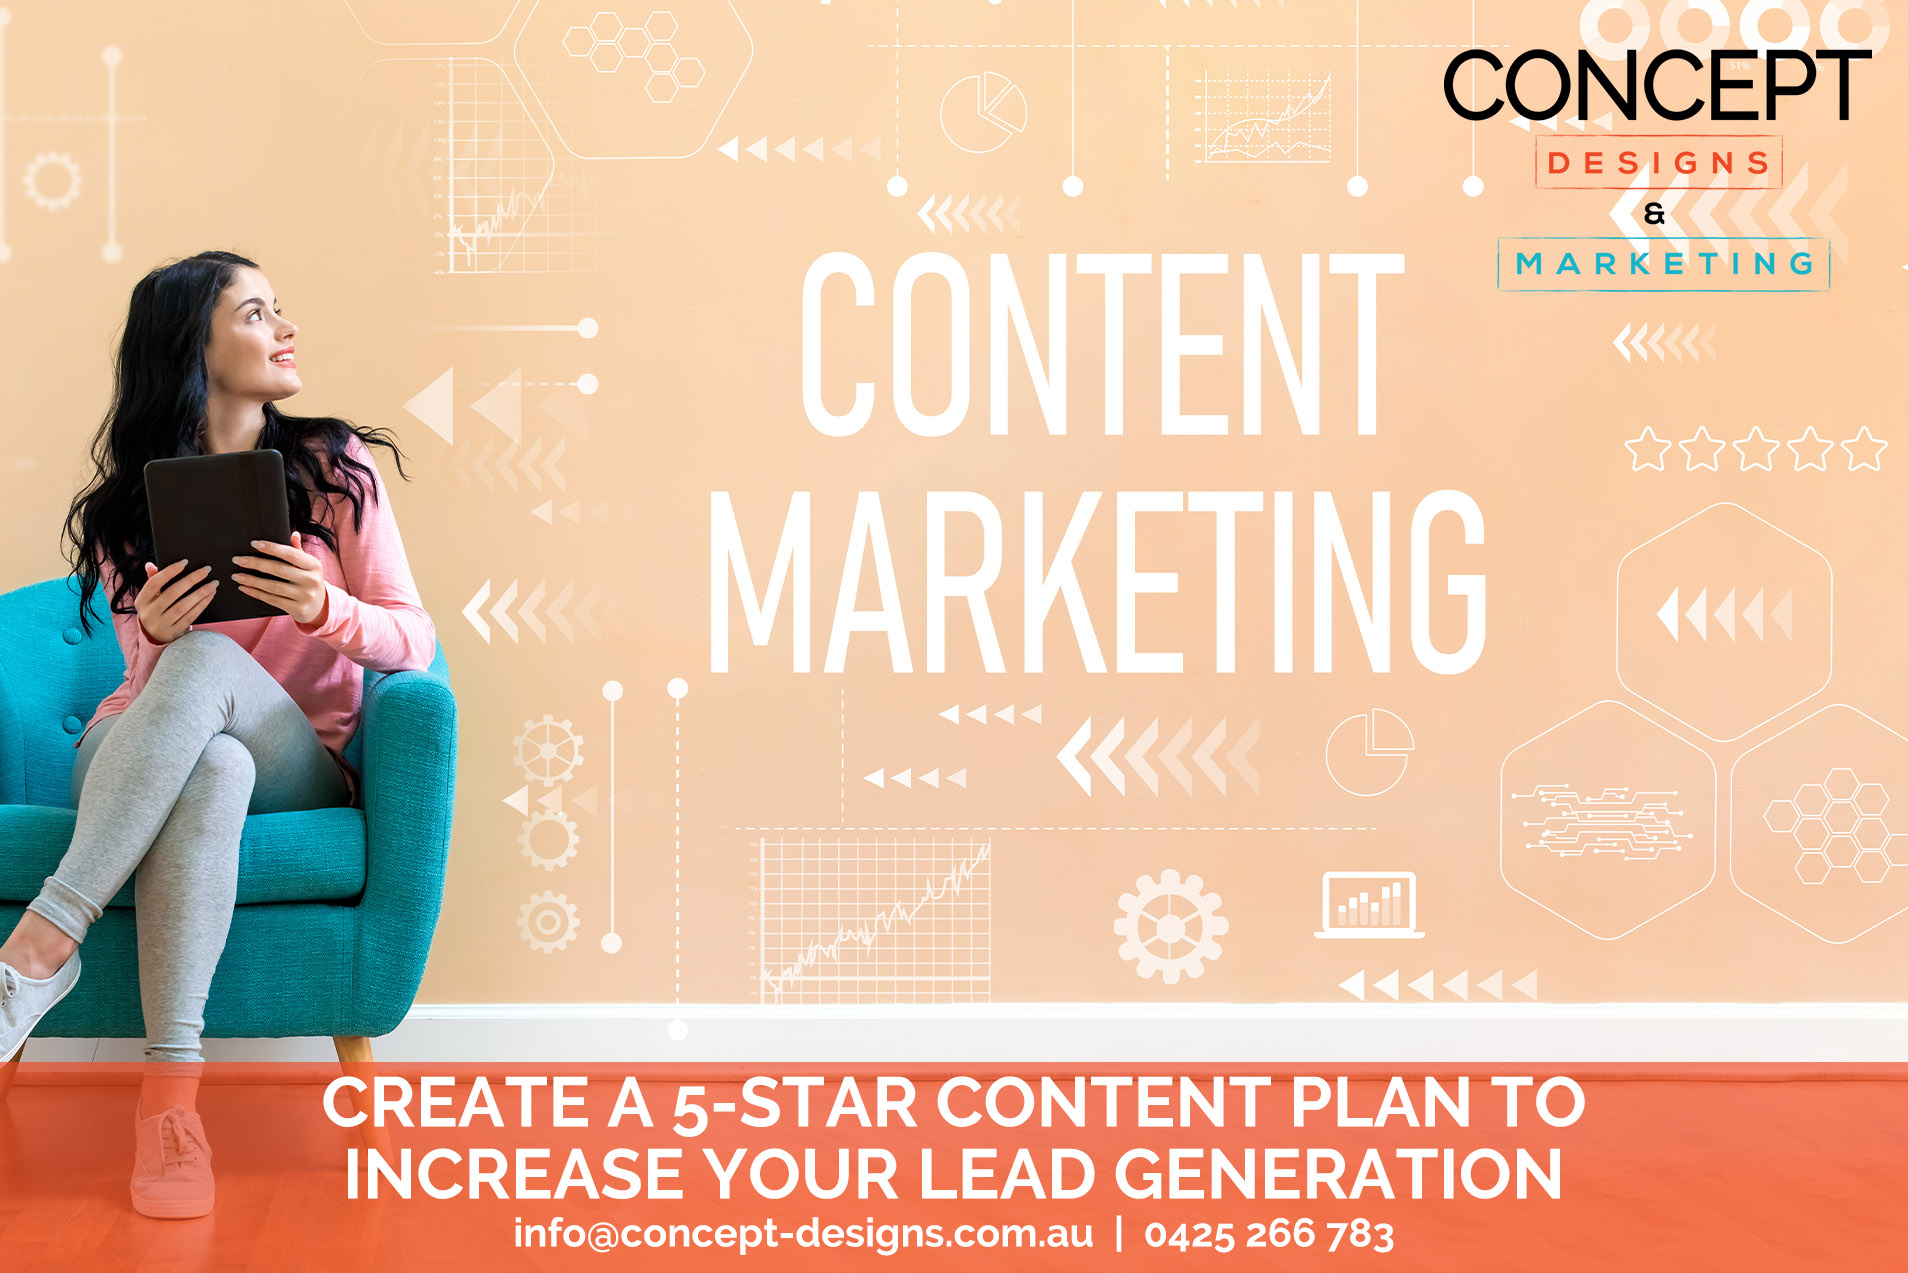 Create A 5-Star Content Plan To Increase Your Lead Generation